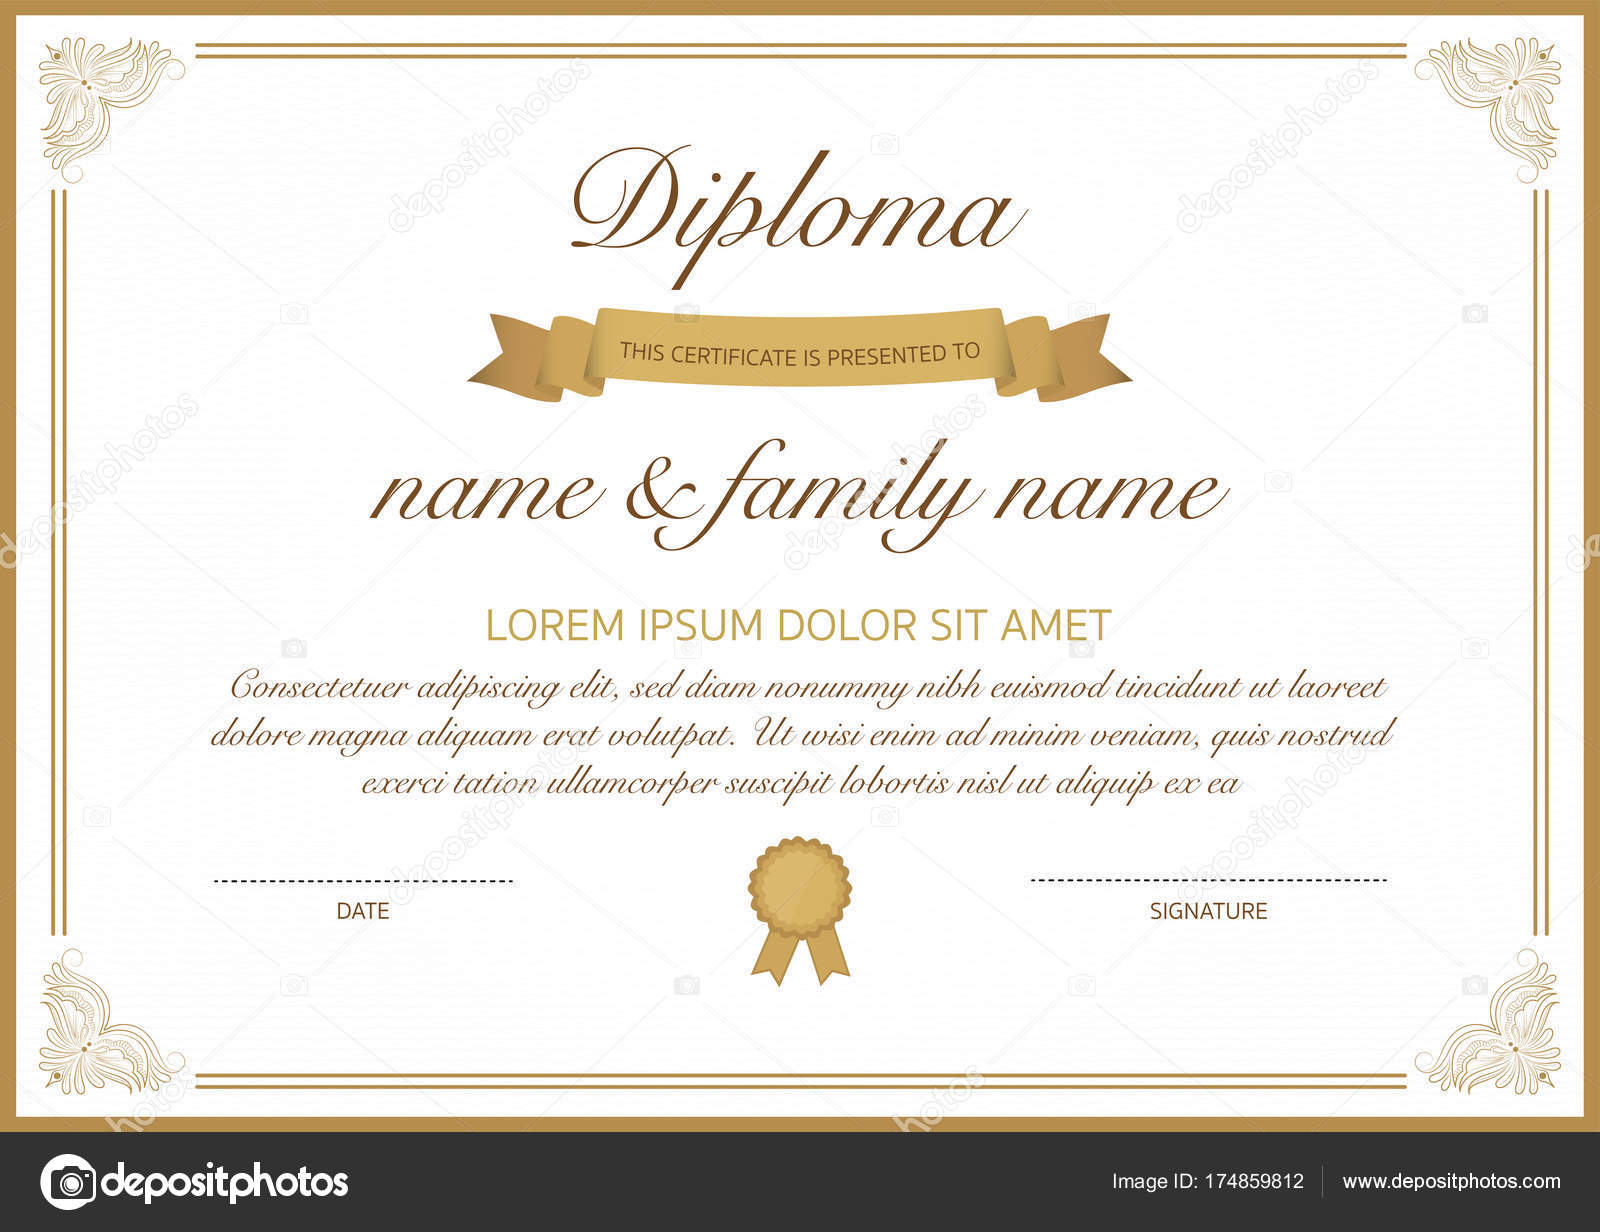 Certificate Of Diploma Template With Golden Border Stock Vector